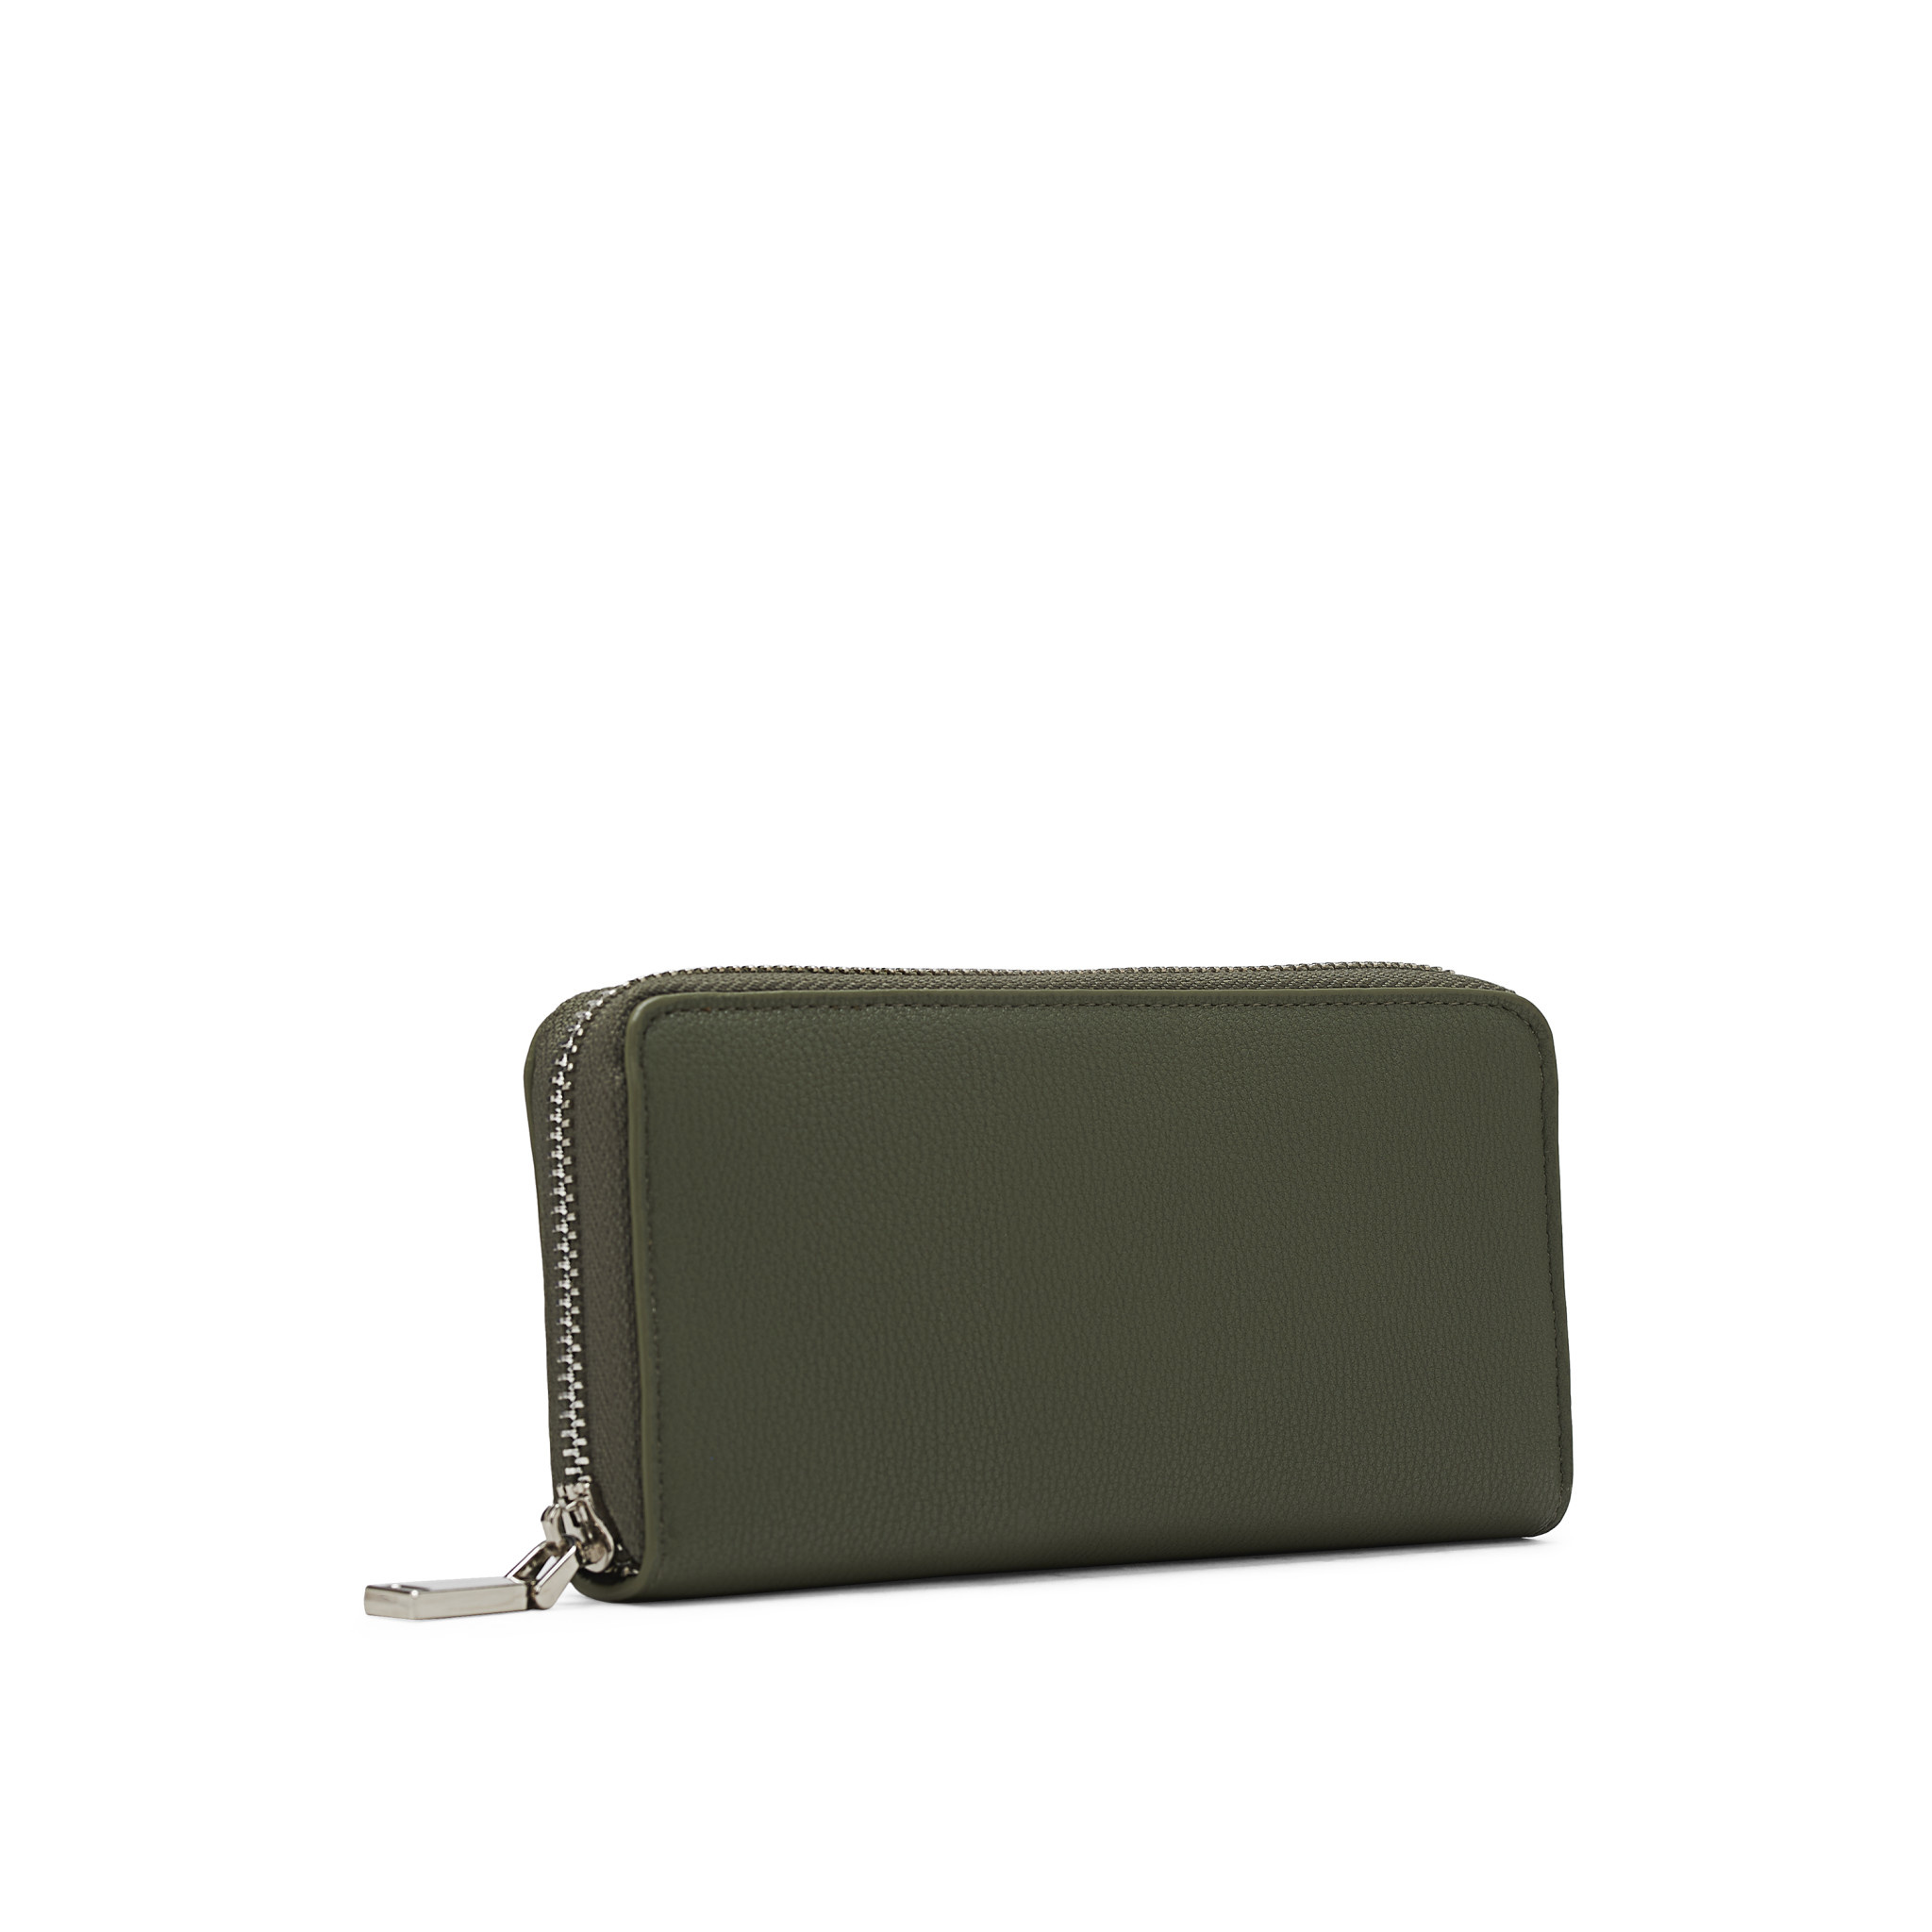 Colab Colab Pebble 2.0 Wallet (#5453) - Olive